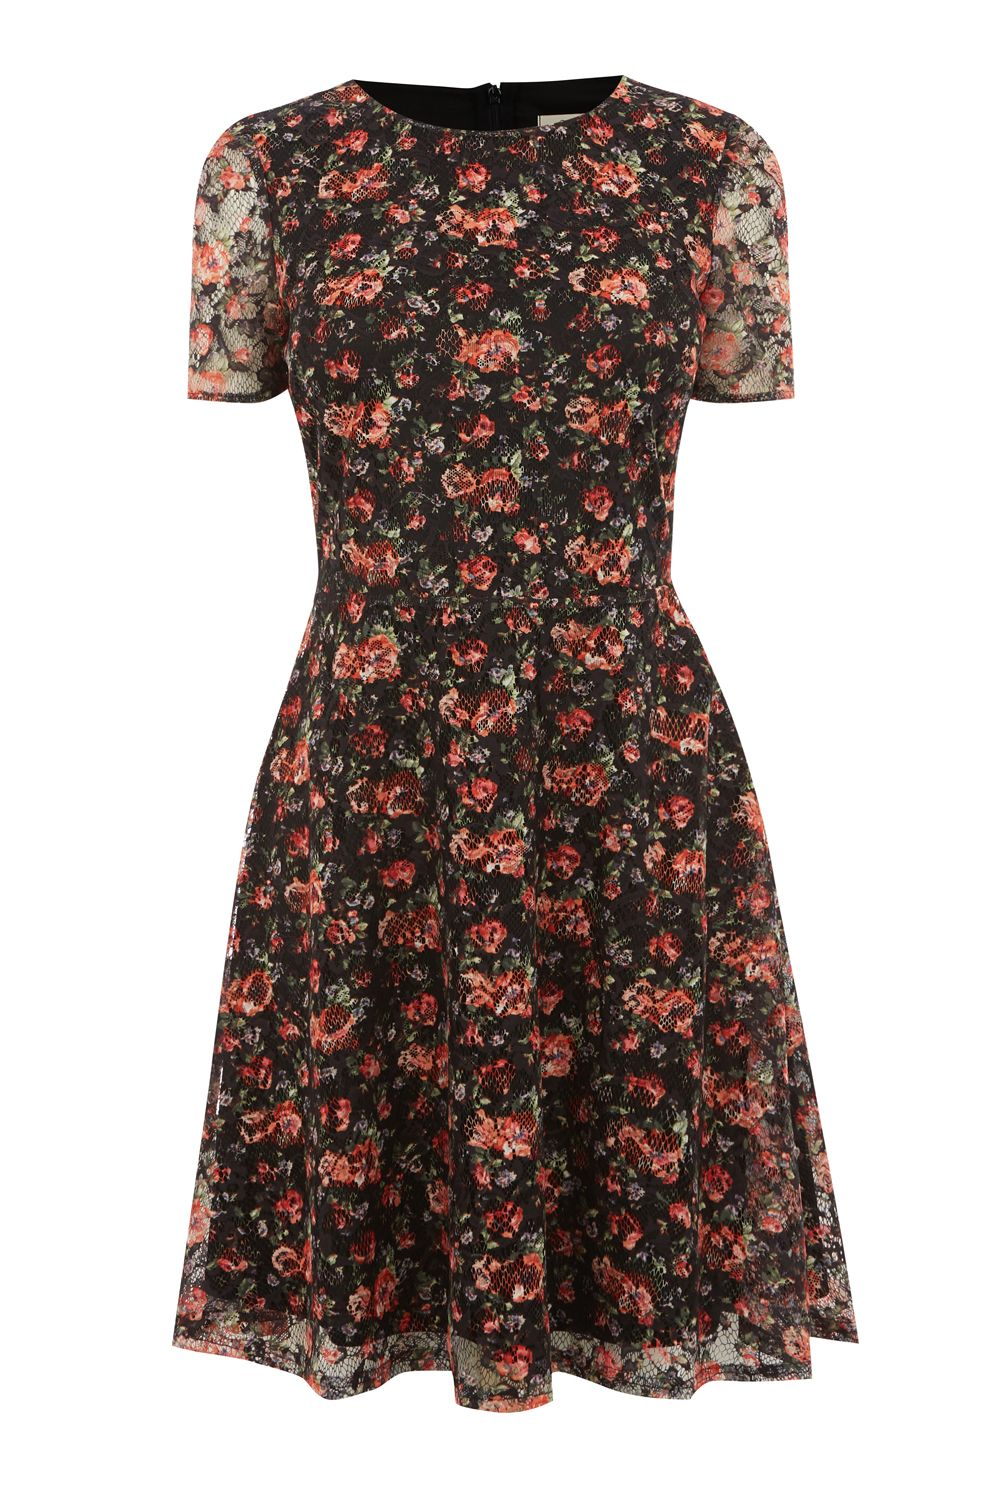 Oasis SMALL ROSE LACE DRESS, Multi-Coloured